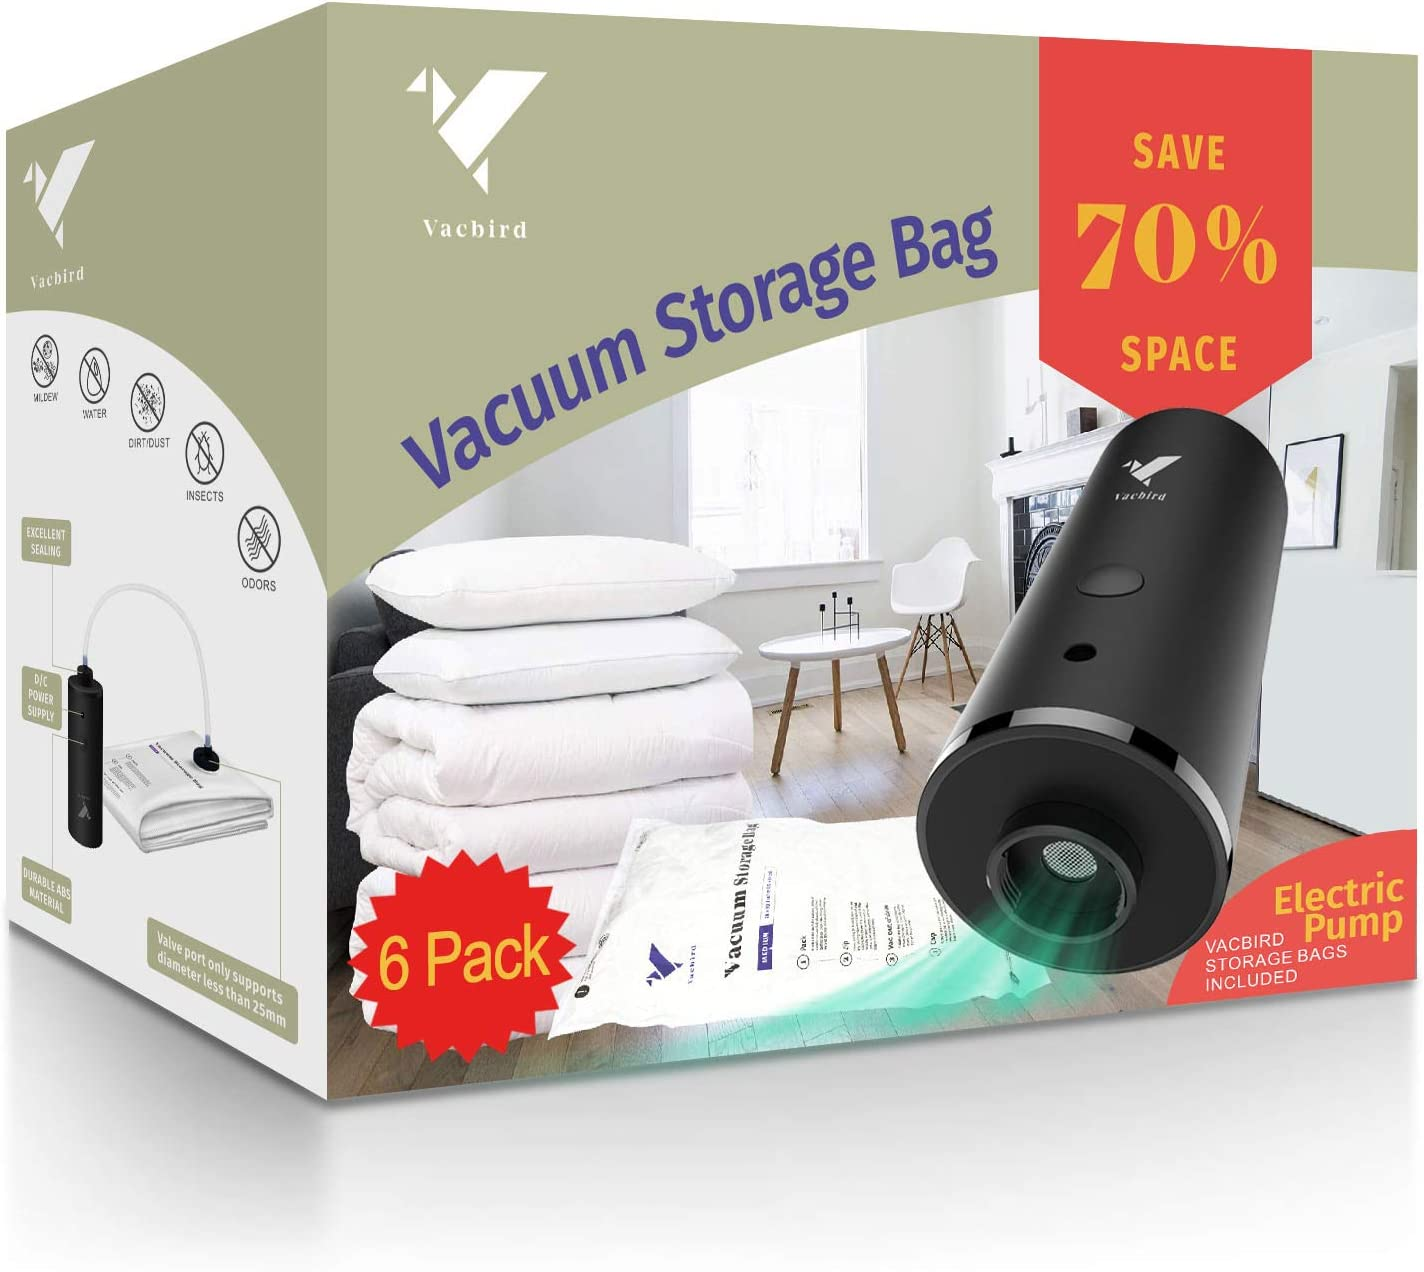 Vacbird Vacuum Storage Bags with Electric Pump, 6 Pack (3 x Small, 3 x Medium) for Comforters Blankets Clothes Pillows Travel Space Saver Seal Bag: Home & Kitchen